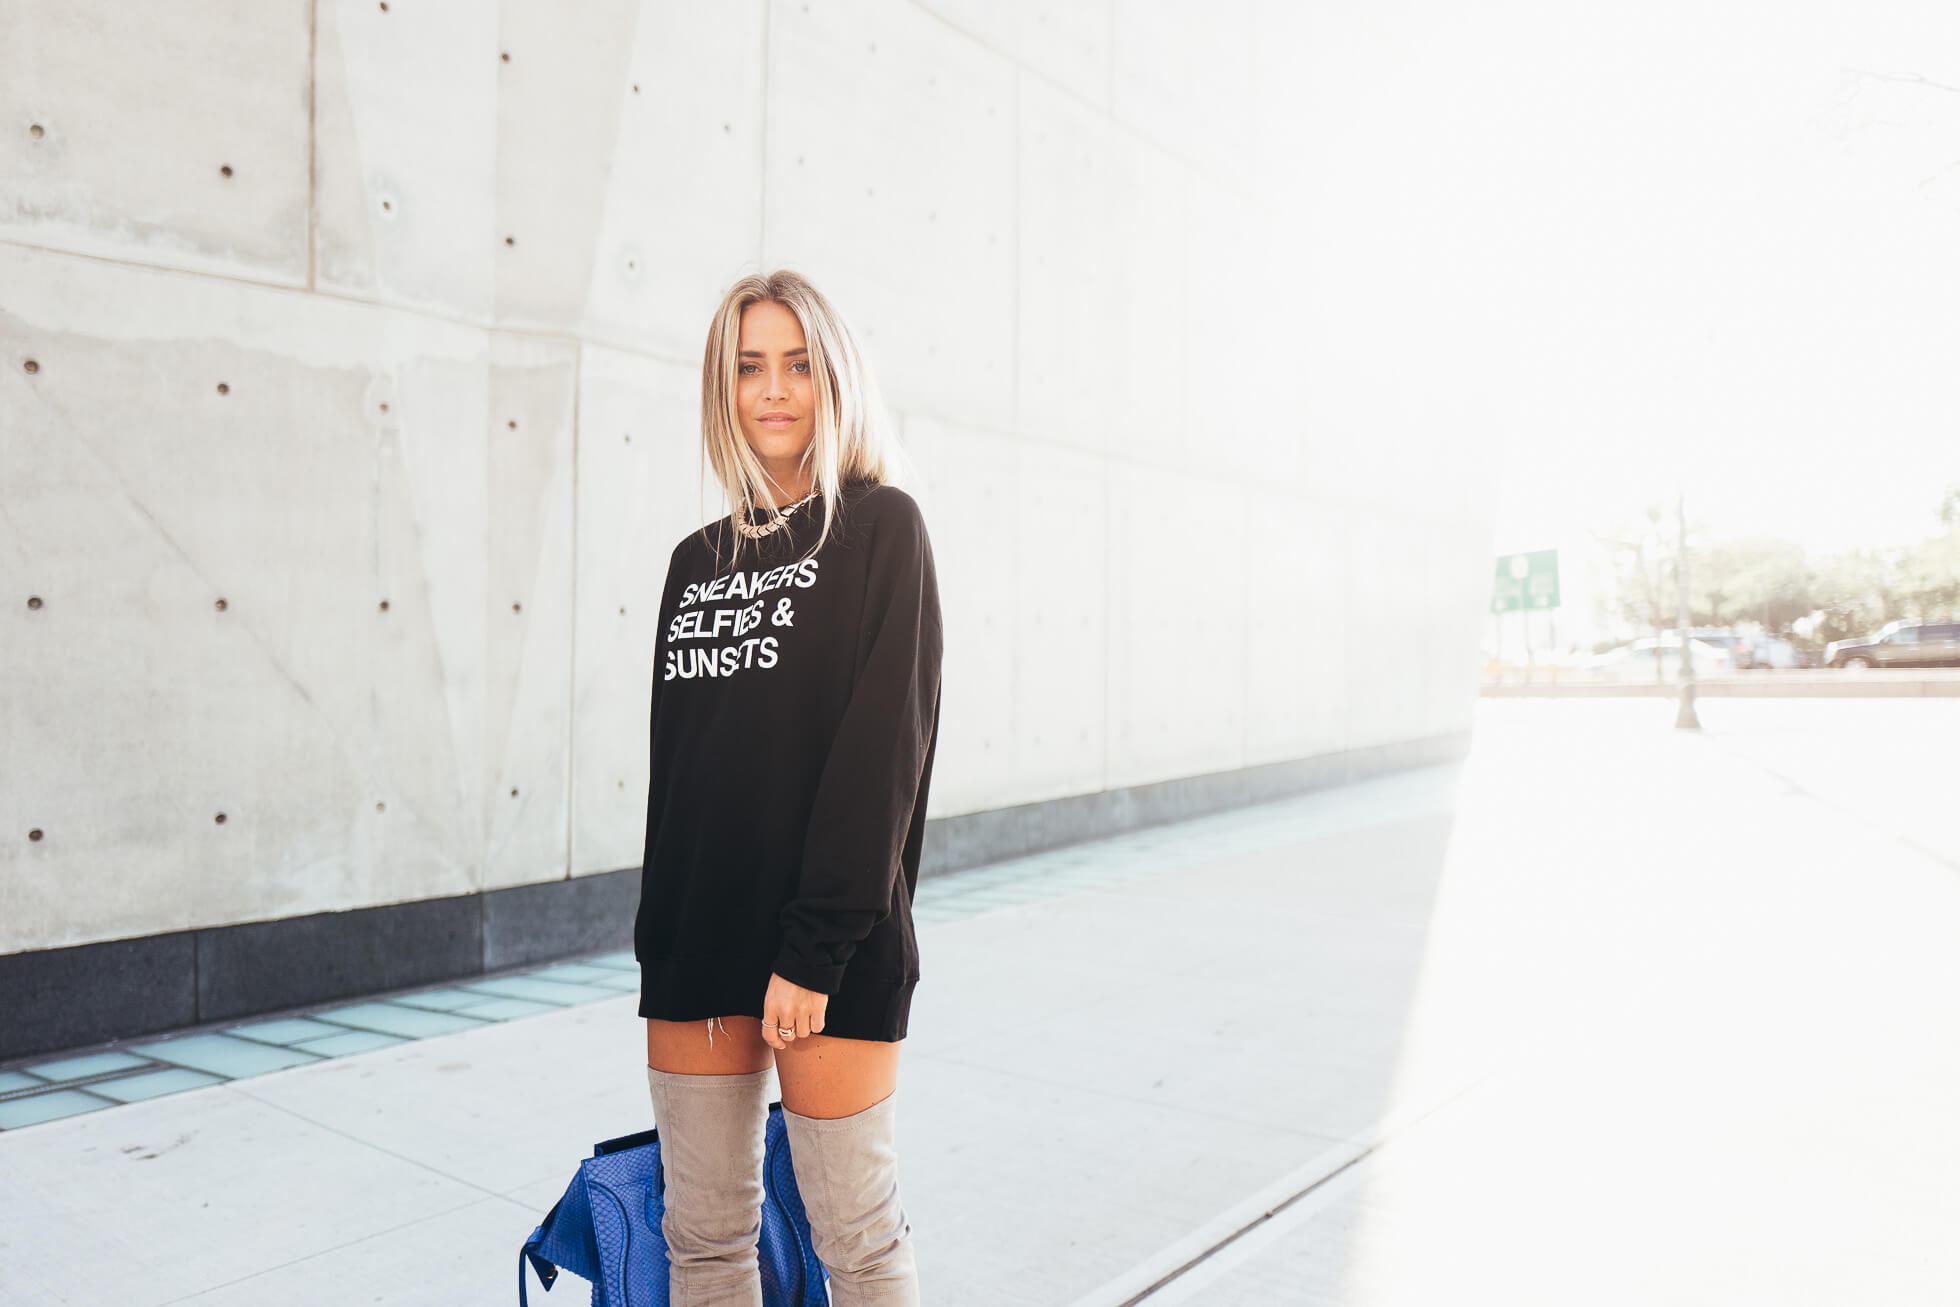 janni-deler-sneakers-selfies-sunsets-sweaterL1090925